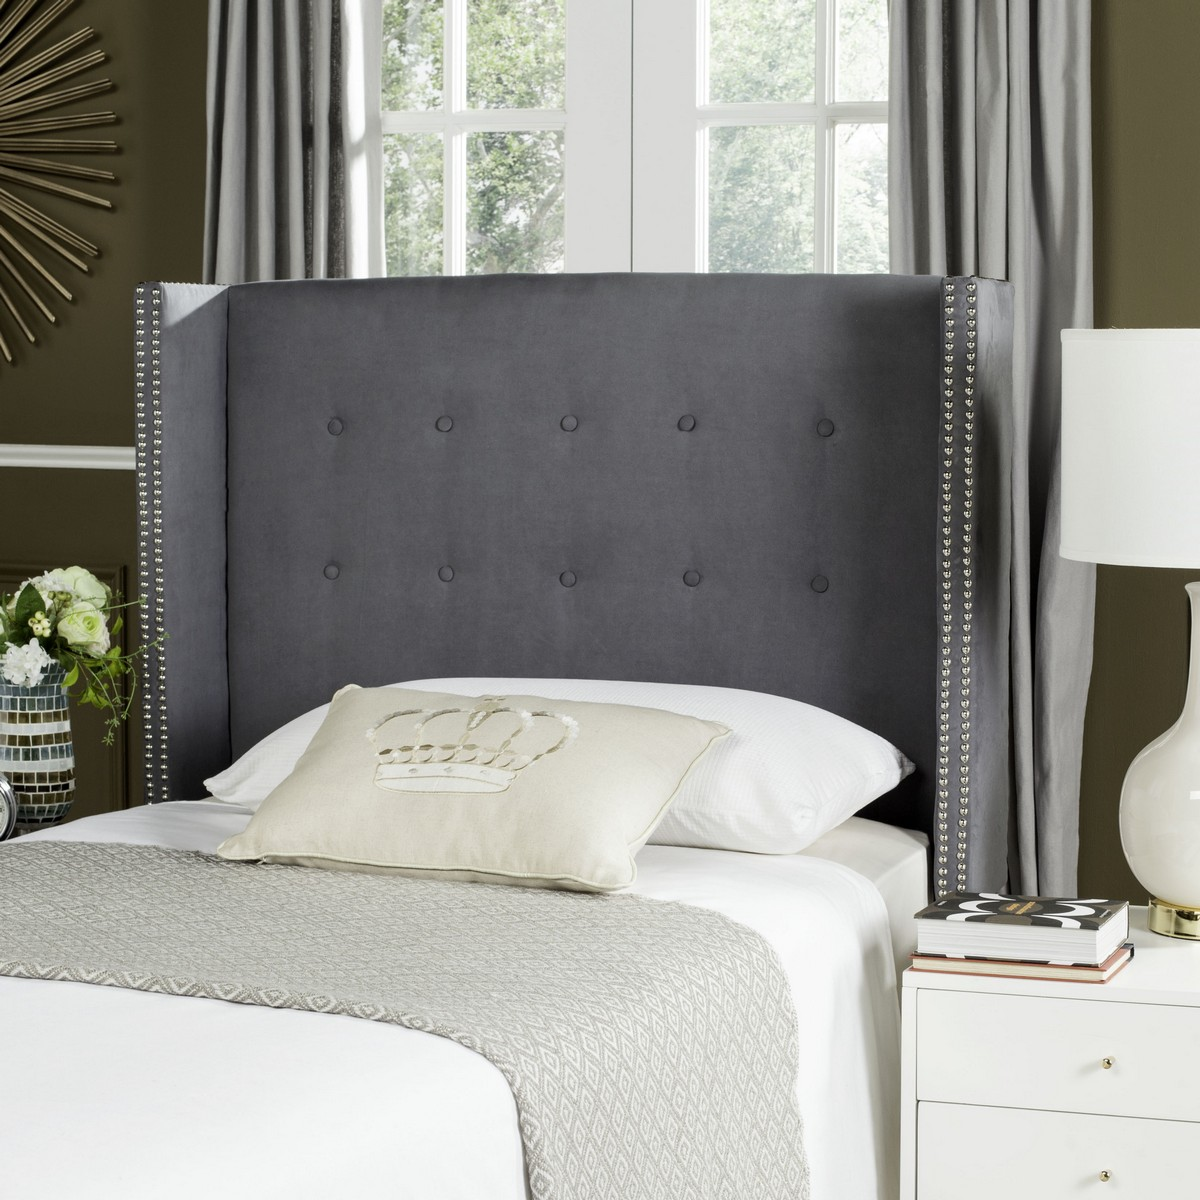 large from headboard very big winged uk min index headboards the company bed